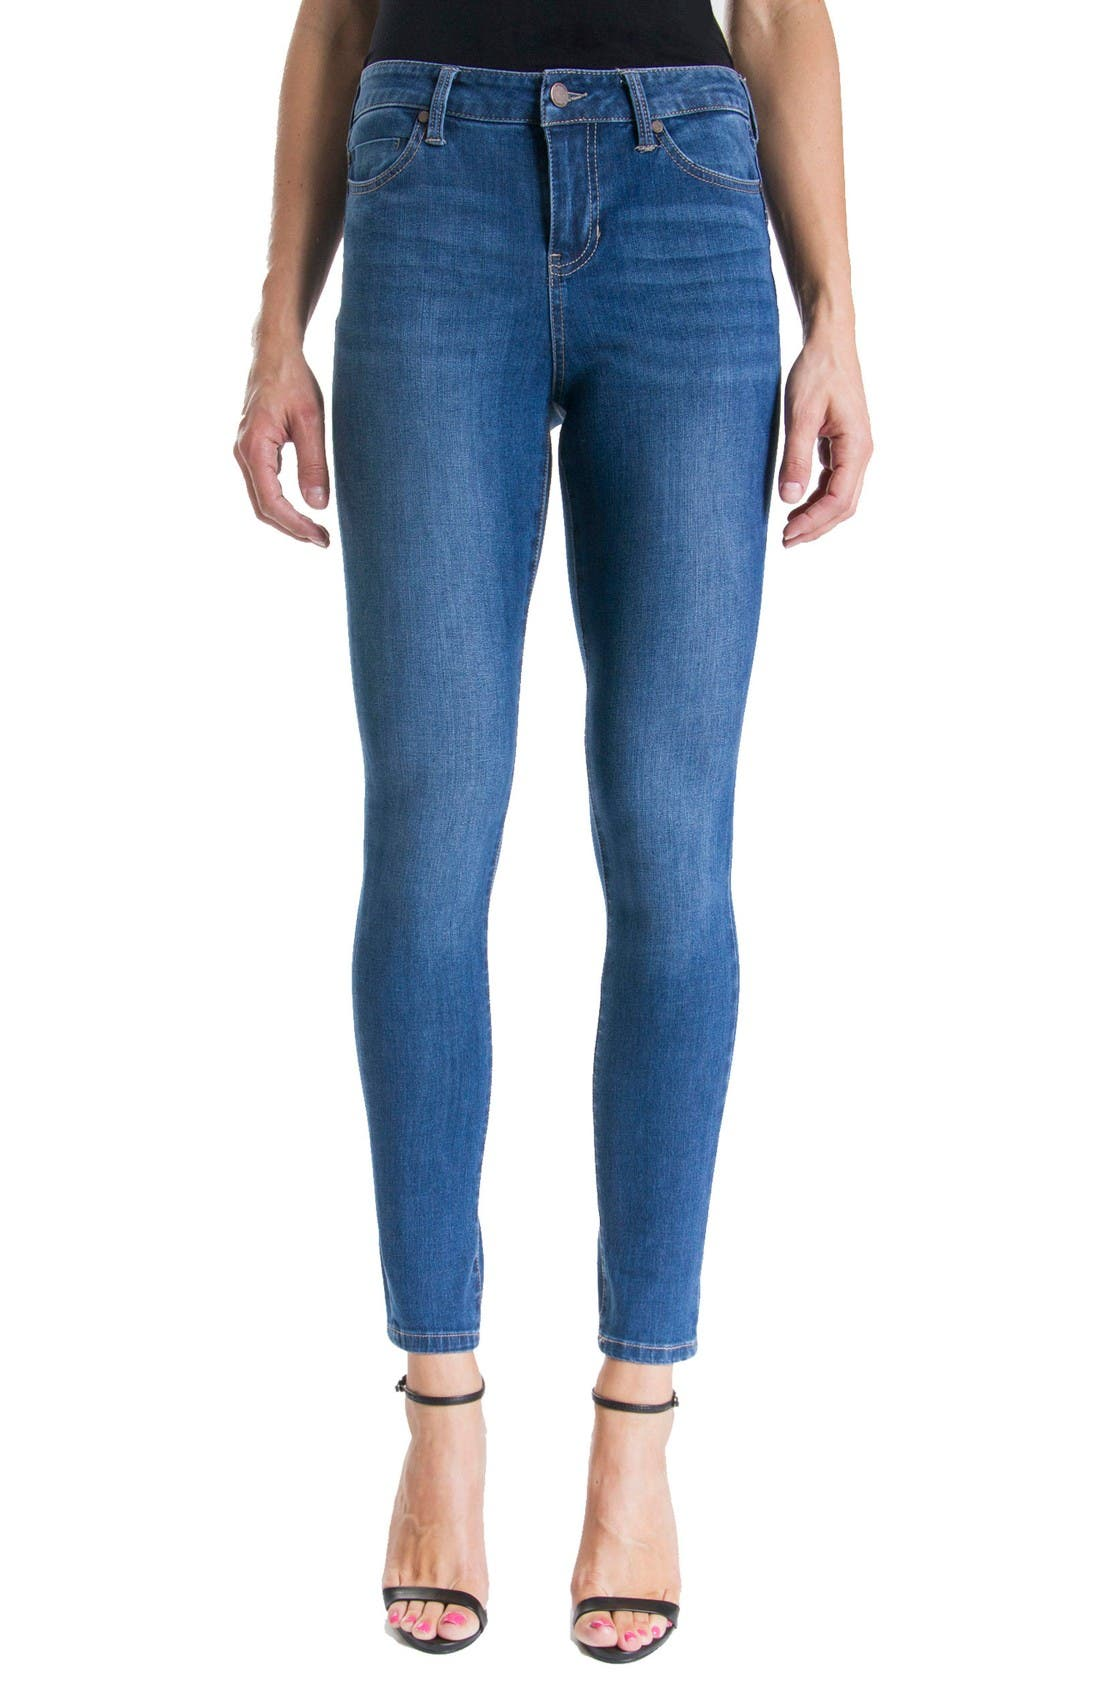 Main Image - Liverpool Jeans Company Piper Hugger Lift Sculpt Ankle Skinny Jeans (Hydra)